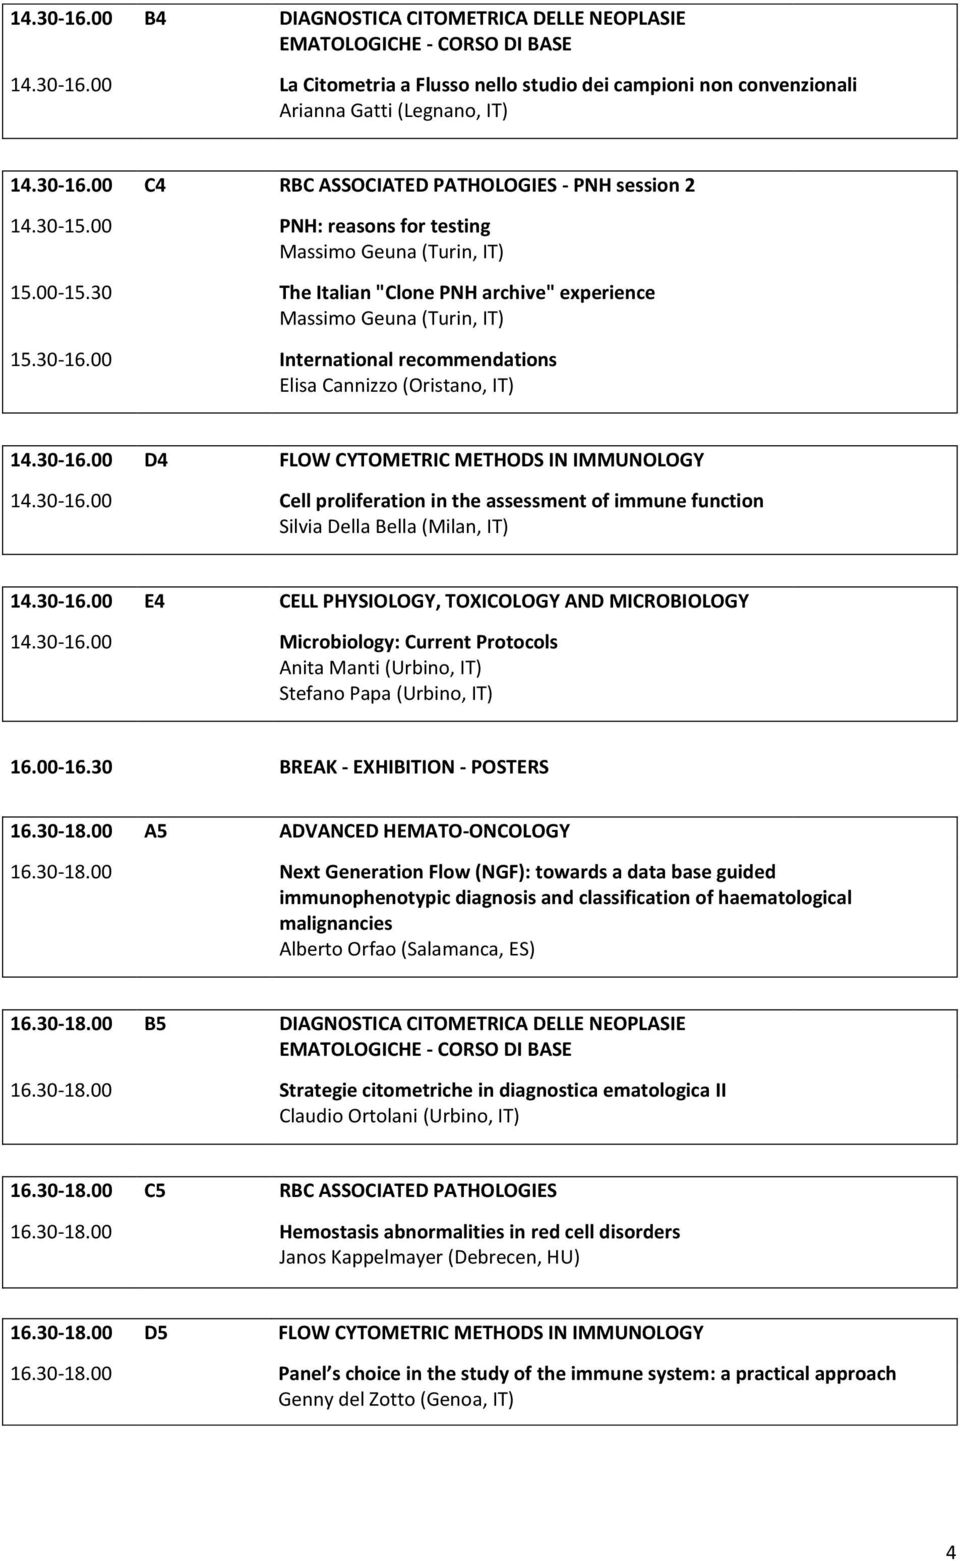 00 International recommendations Elisa Cannizzo (Oristano, IT) 14.30-16.00 D4 FLOW CYTOMETRIC METHODS IN IMMUNOLOGY 14.30-16.00 Cell proliferation in the assessment of immune function Silvia Della Bella (Milan, IT) 14.